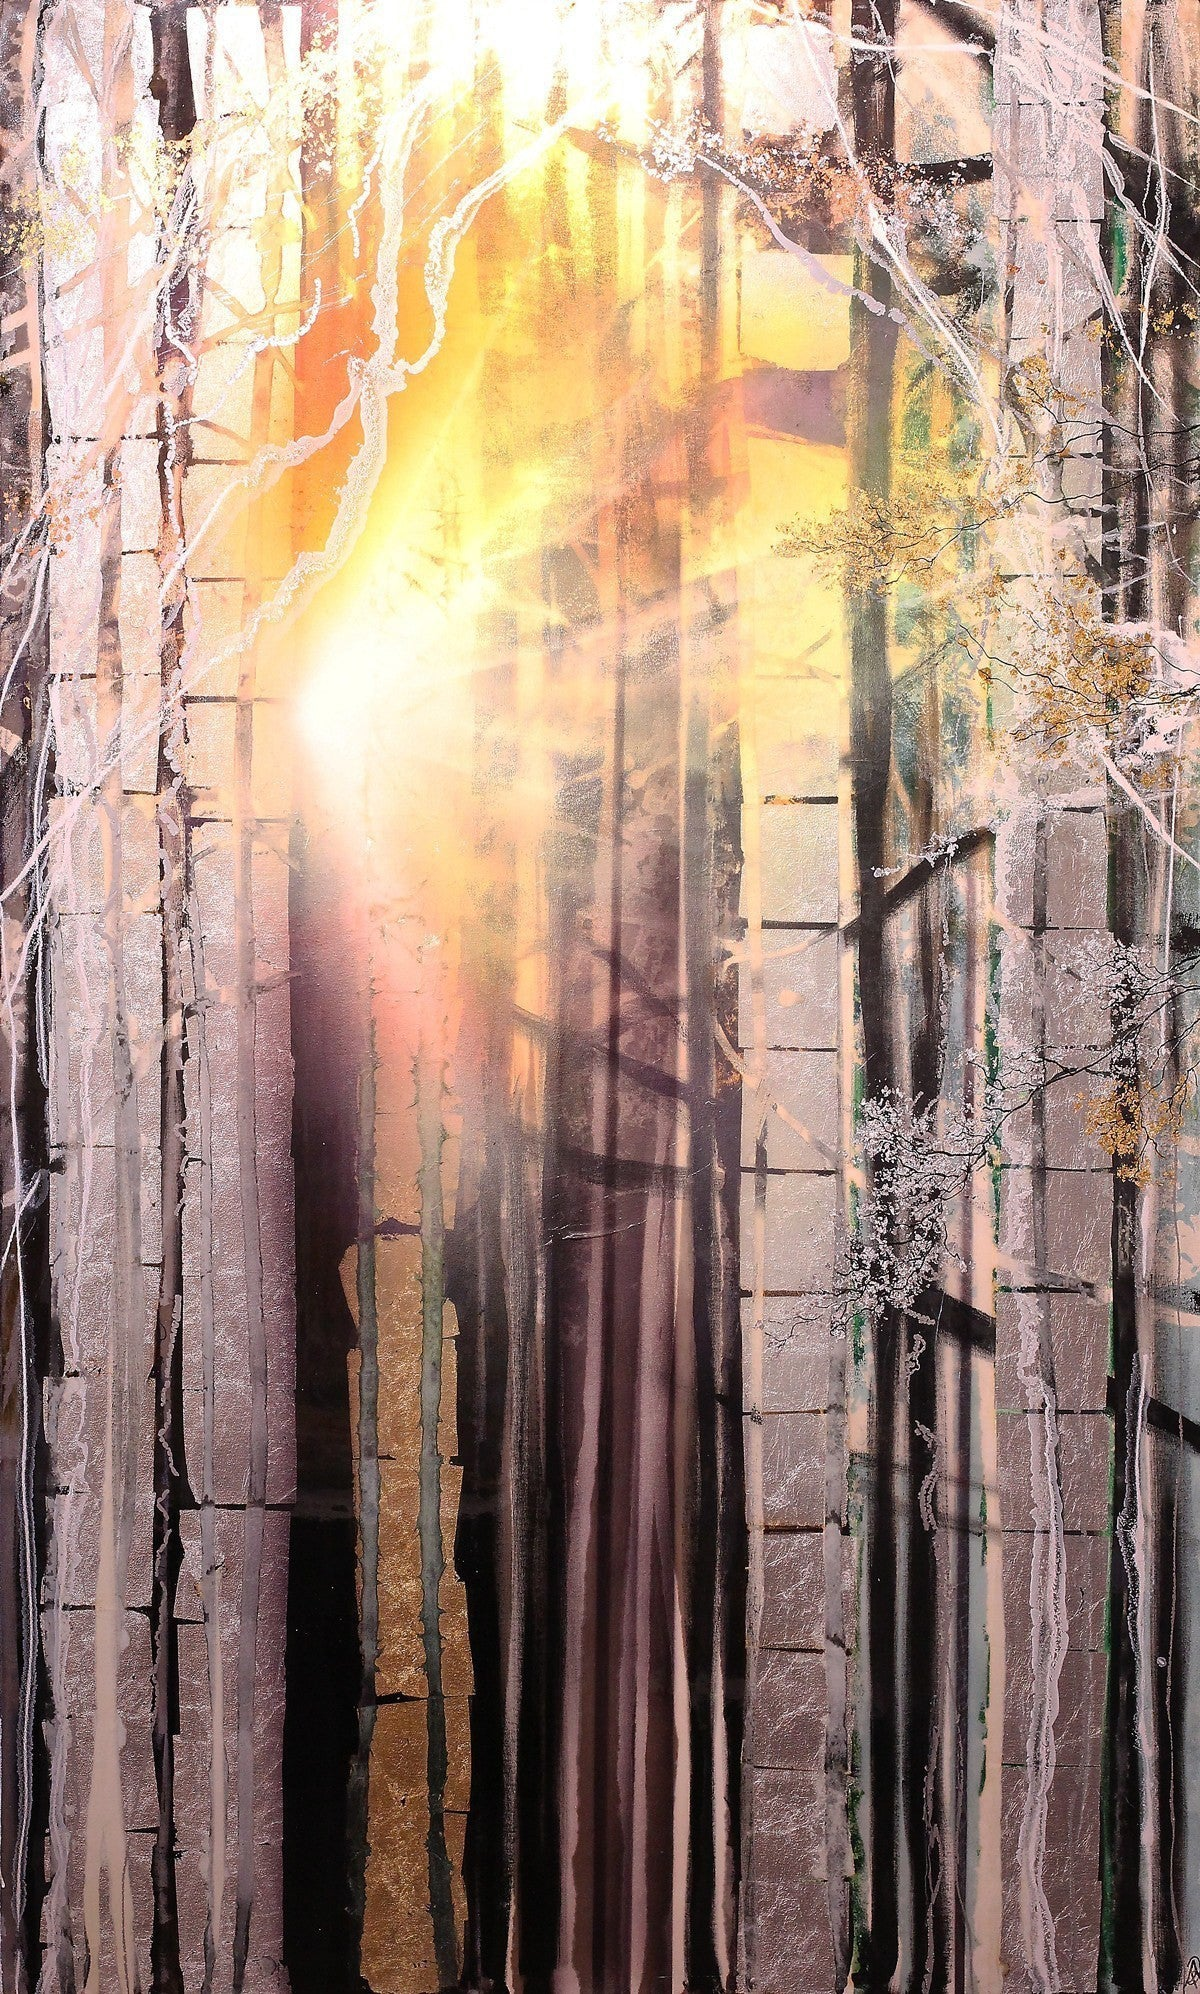 Sunlight Through the Trees - SOLD Robin Eckardt